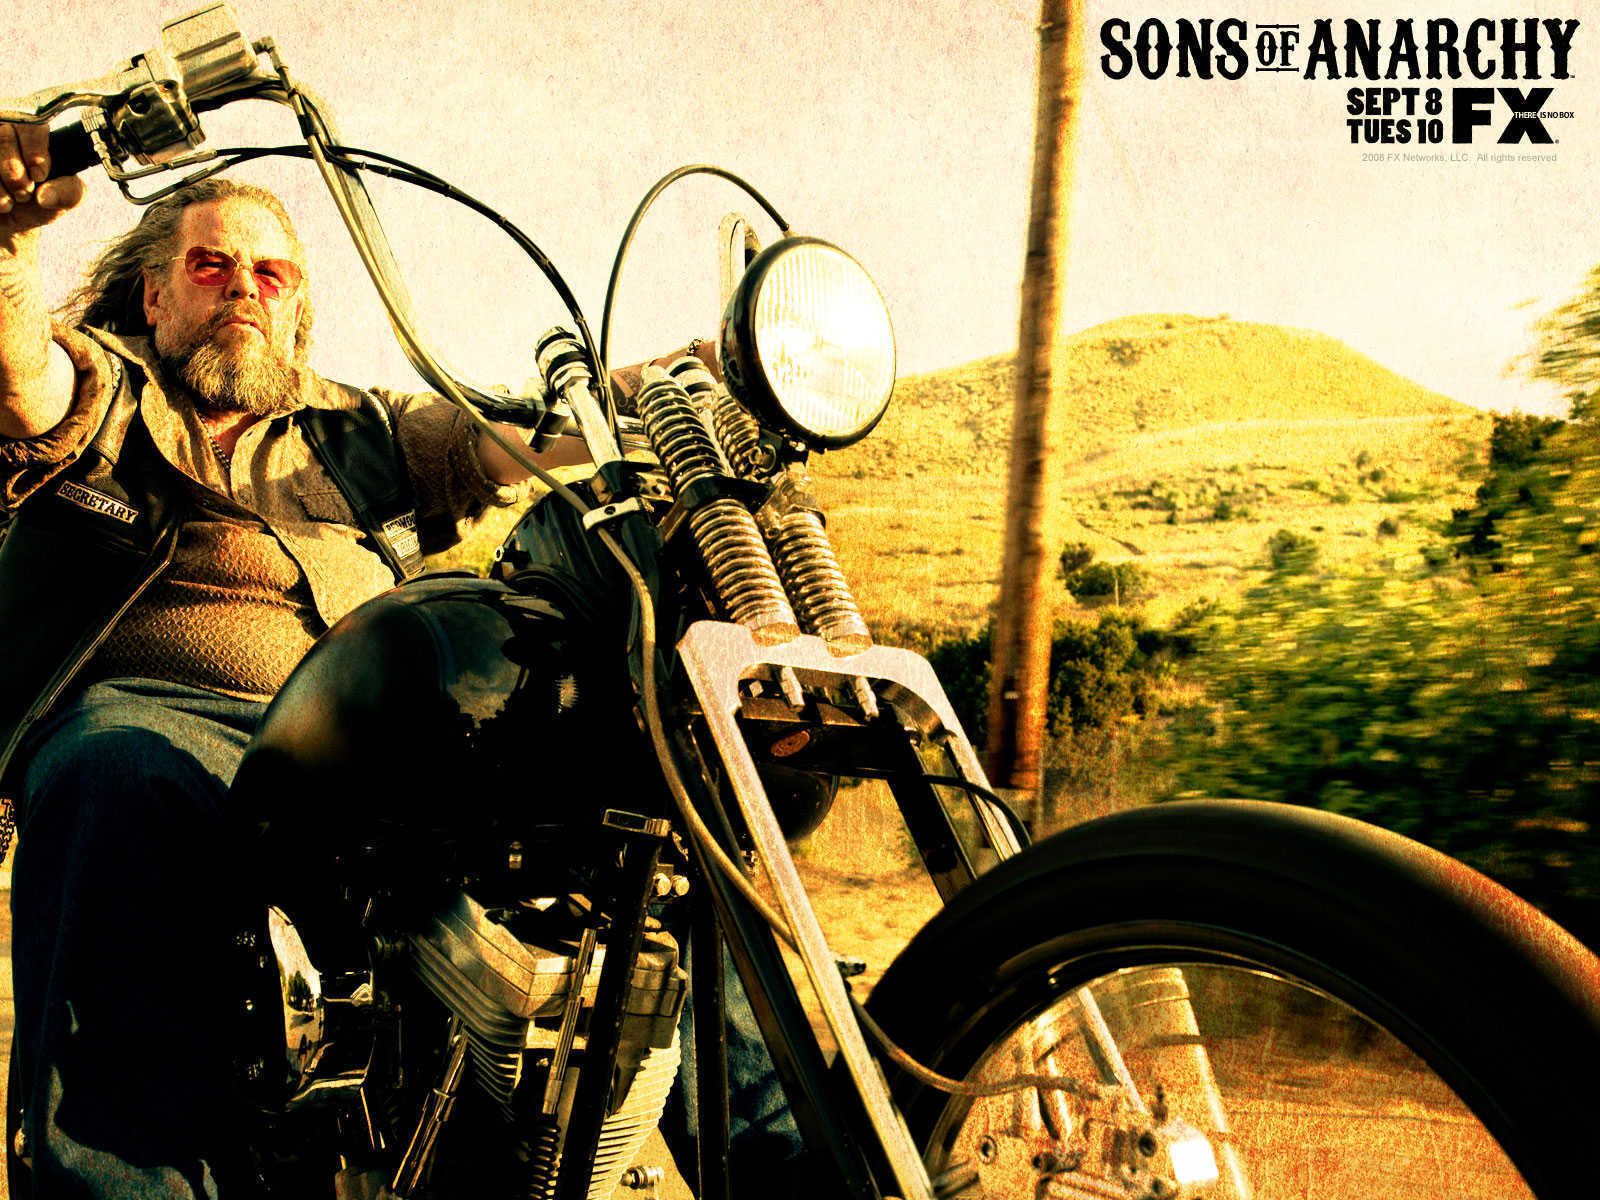 Sons Of Anarchy Bikes | Son Of Anarchy Motorcycle | Happy From Soa